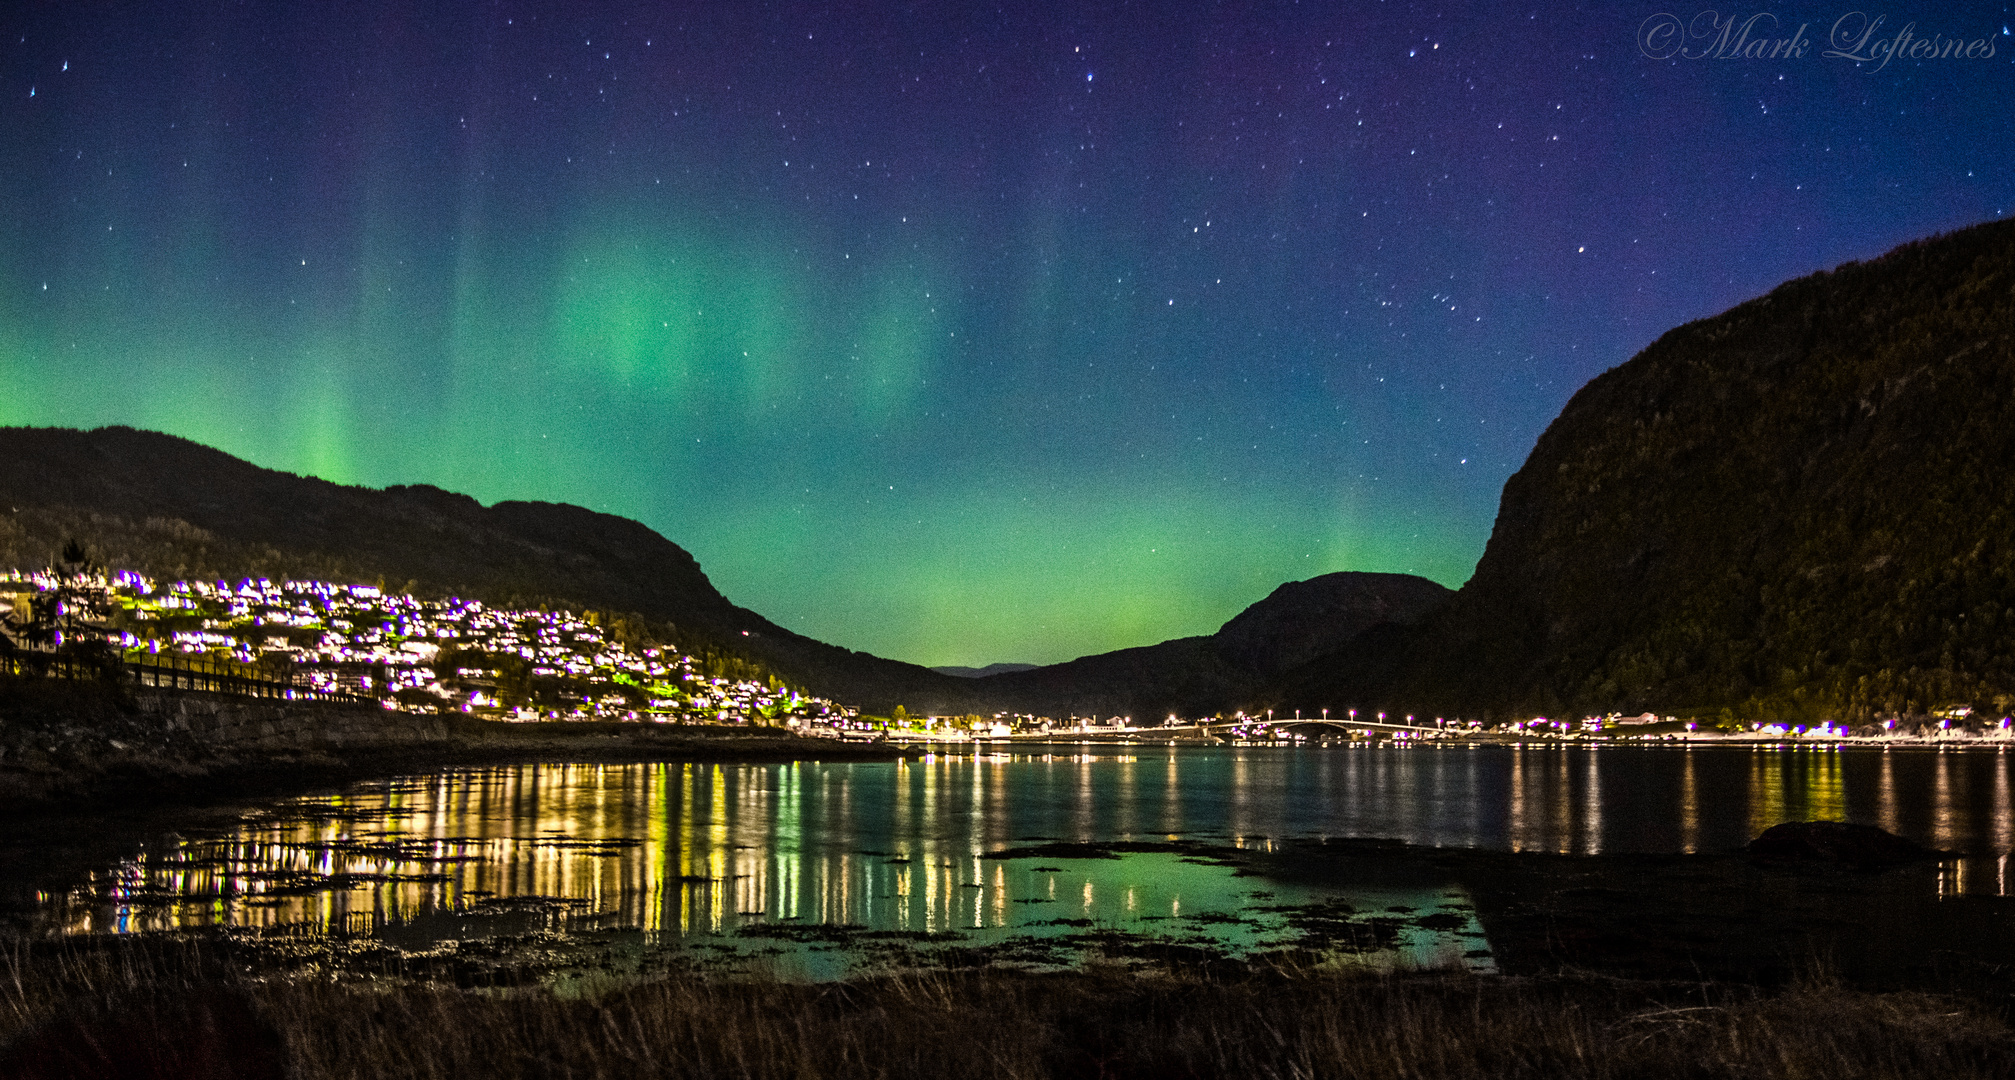 Northern lights from my hometown